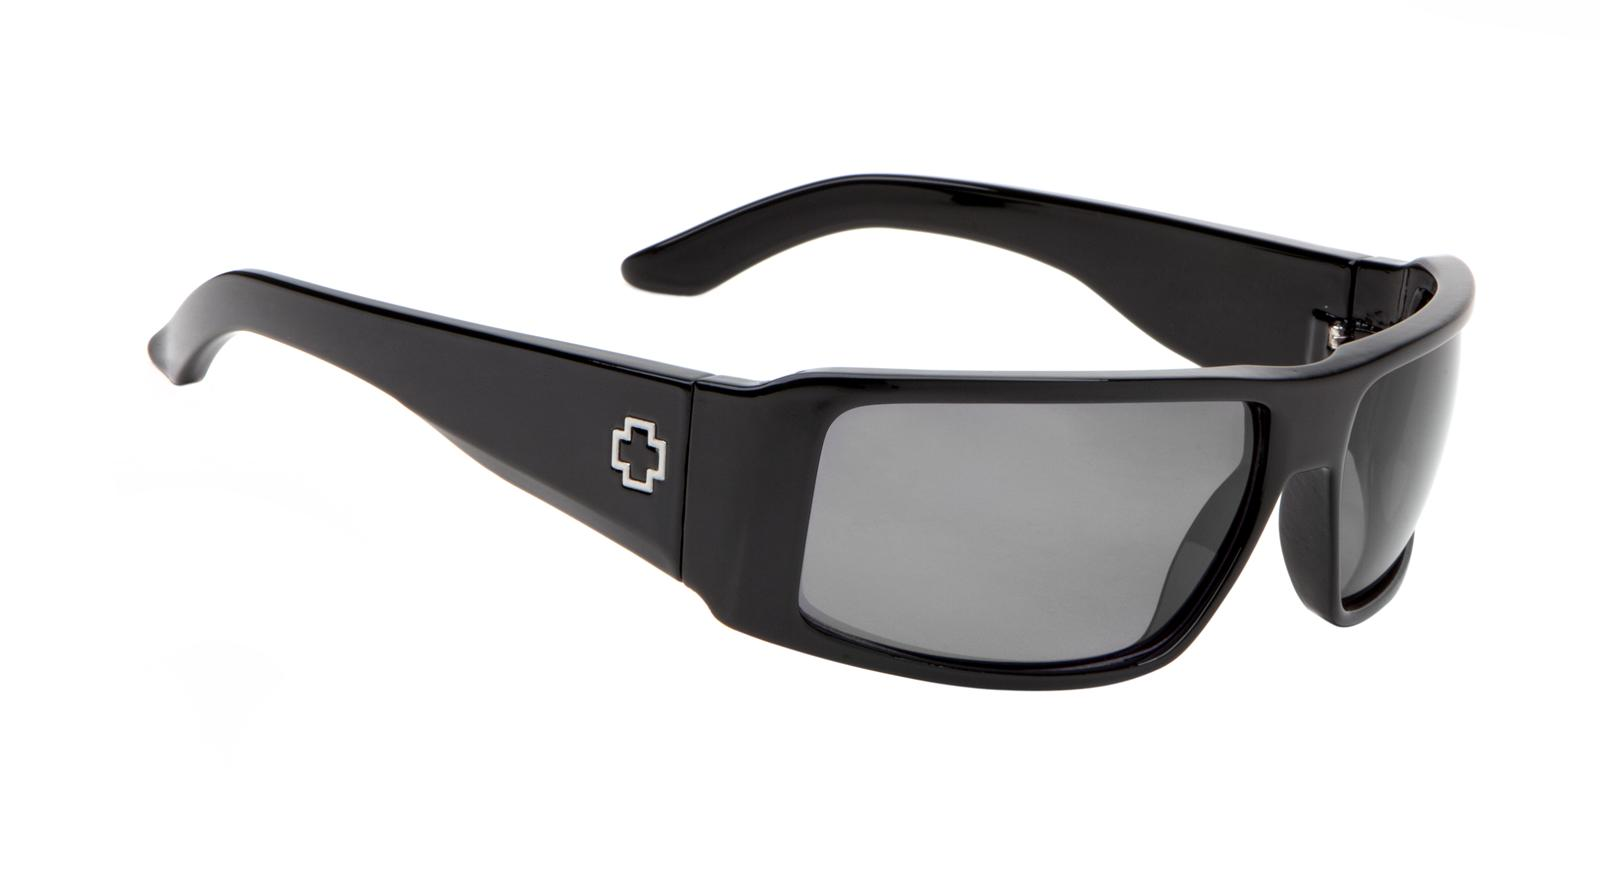 b9b4fd2b0f SPY Optic Council Sunglasses 673041038129 - Free Shipping on Orders Over   99 at Summit Racing